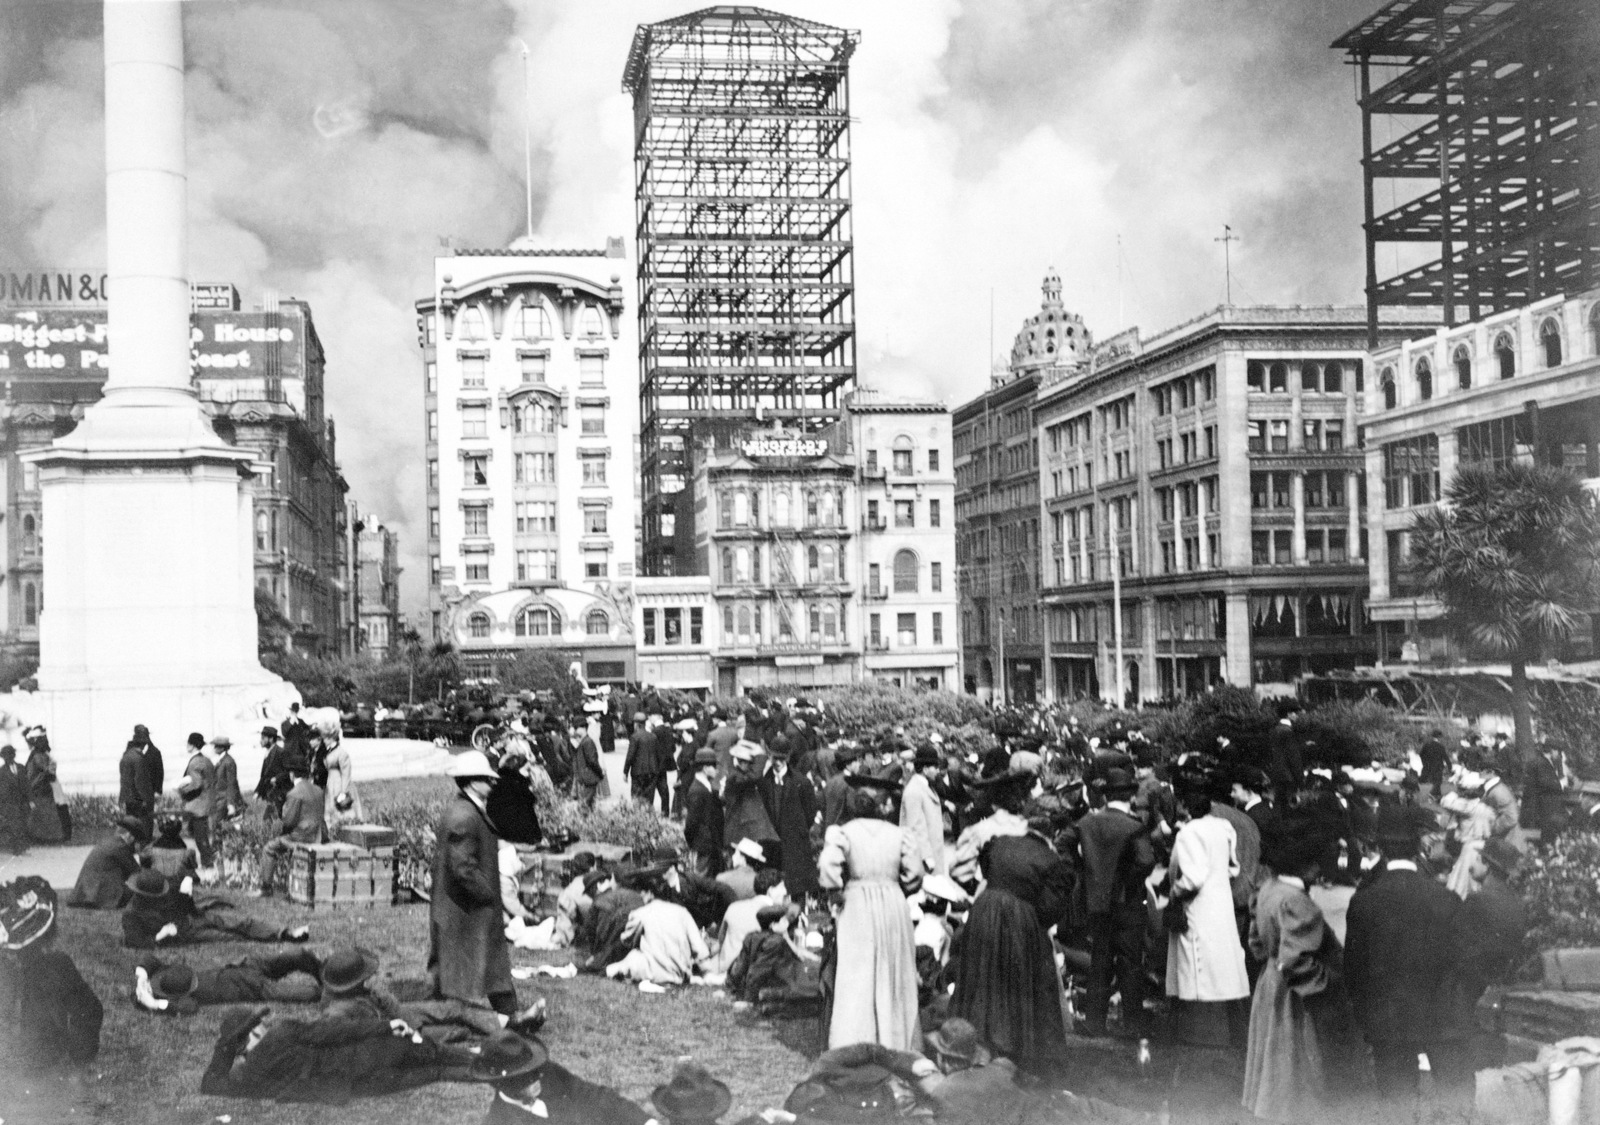 As fires rage in the background, the newly of San Francisco gather at Union Square. The tall steel skeleton, then known as the Union League Building, was under construction at the time of the earthquake, later finished, and still standing on Geary Street. The Butler Building at right, also under construction at the time. Its walls peeled away during the earthquake and killed several people in buildings adjoining the structure. On April 18, 1906 at 5:15 AM a quake of 8.25 on the Richter scale hit San Francisco. Greater destruction came from the fires afterwards. The city burned for three days. The combination destroyed 490 city blocks and 25,000 buildings, leaving 250,000...